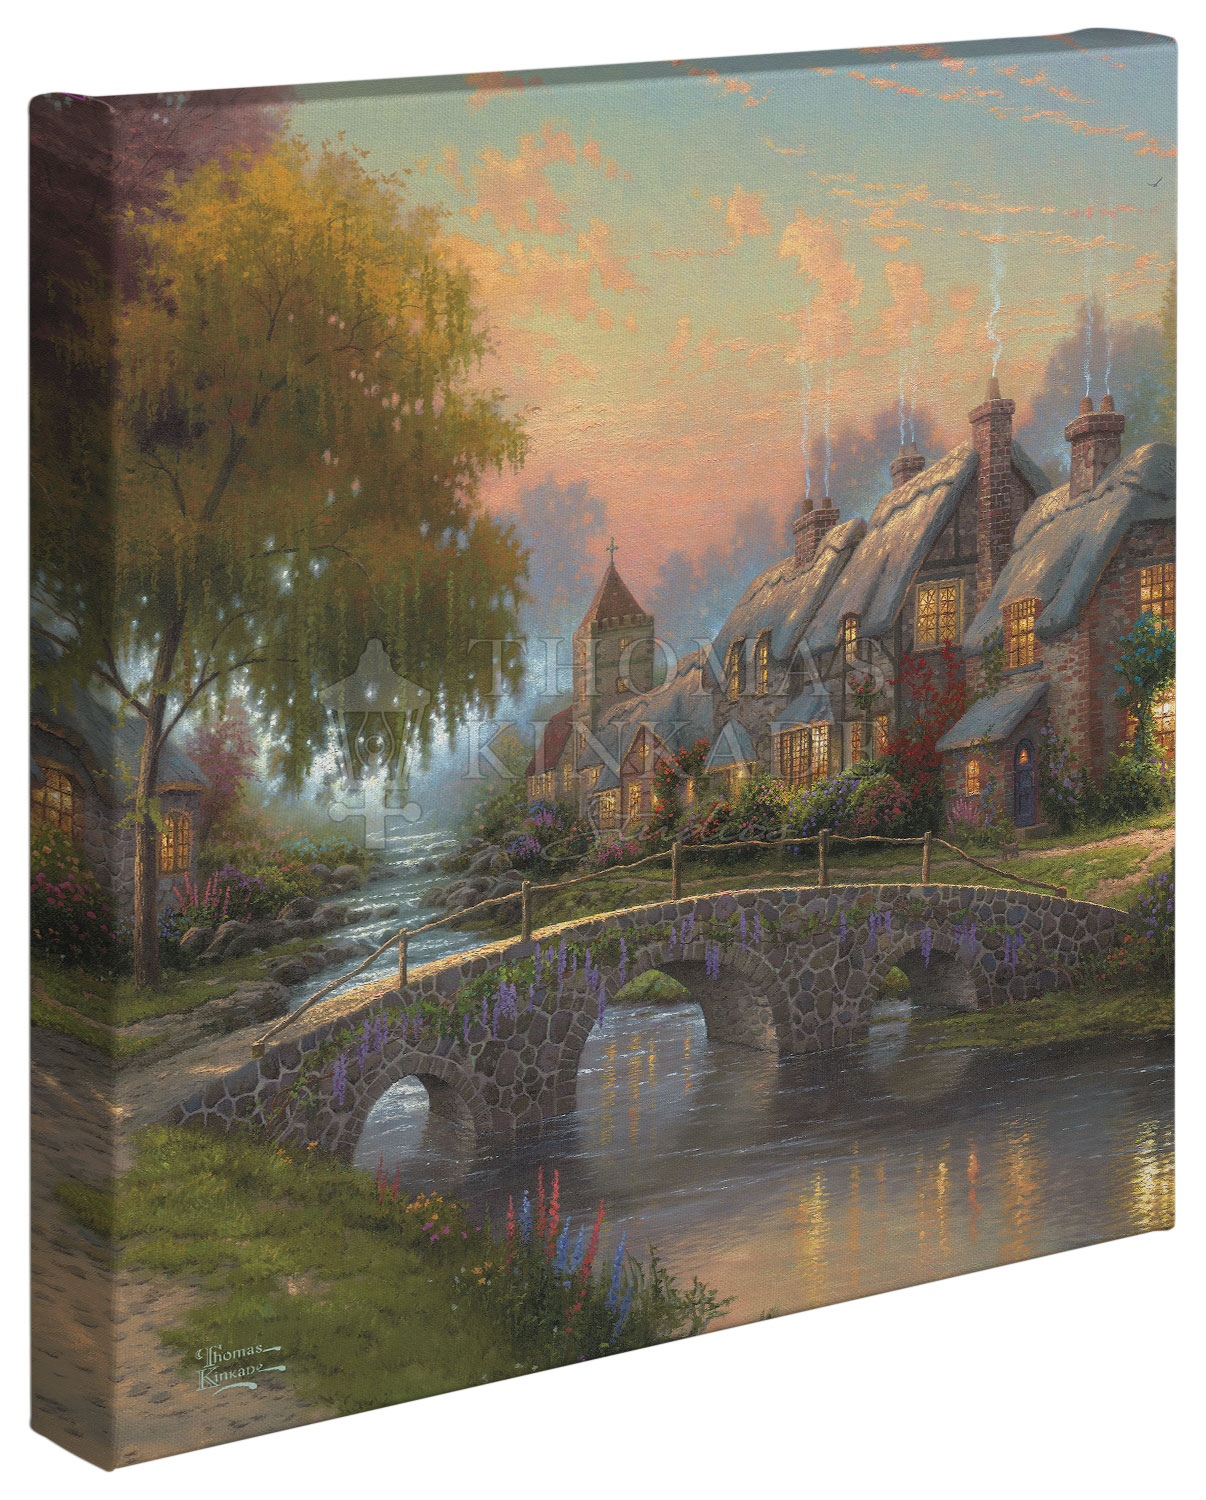 Cobblestone Bridge – 14″ x 14″ Gallery Wrapped Canvas